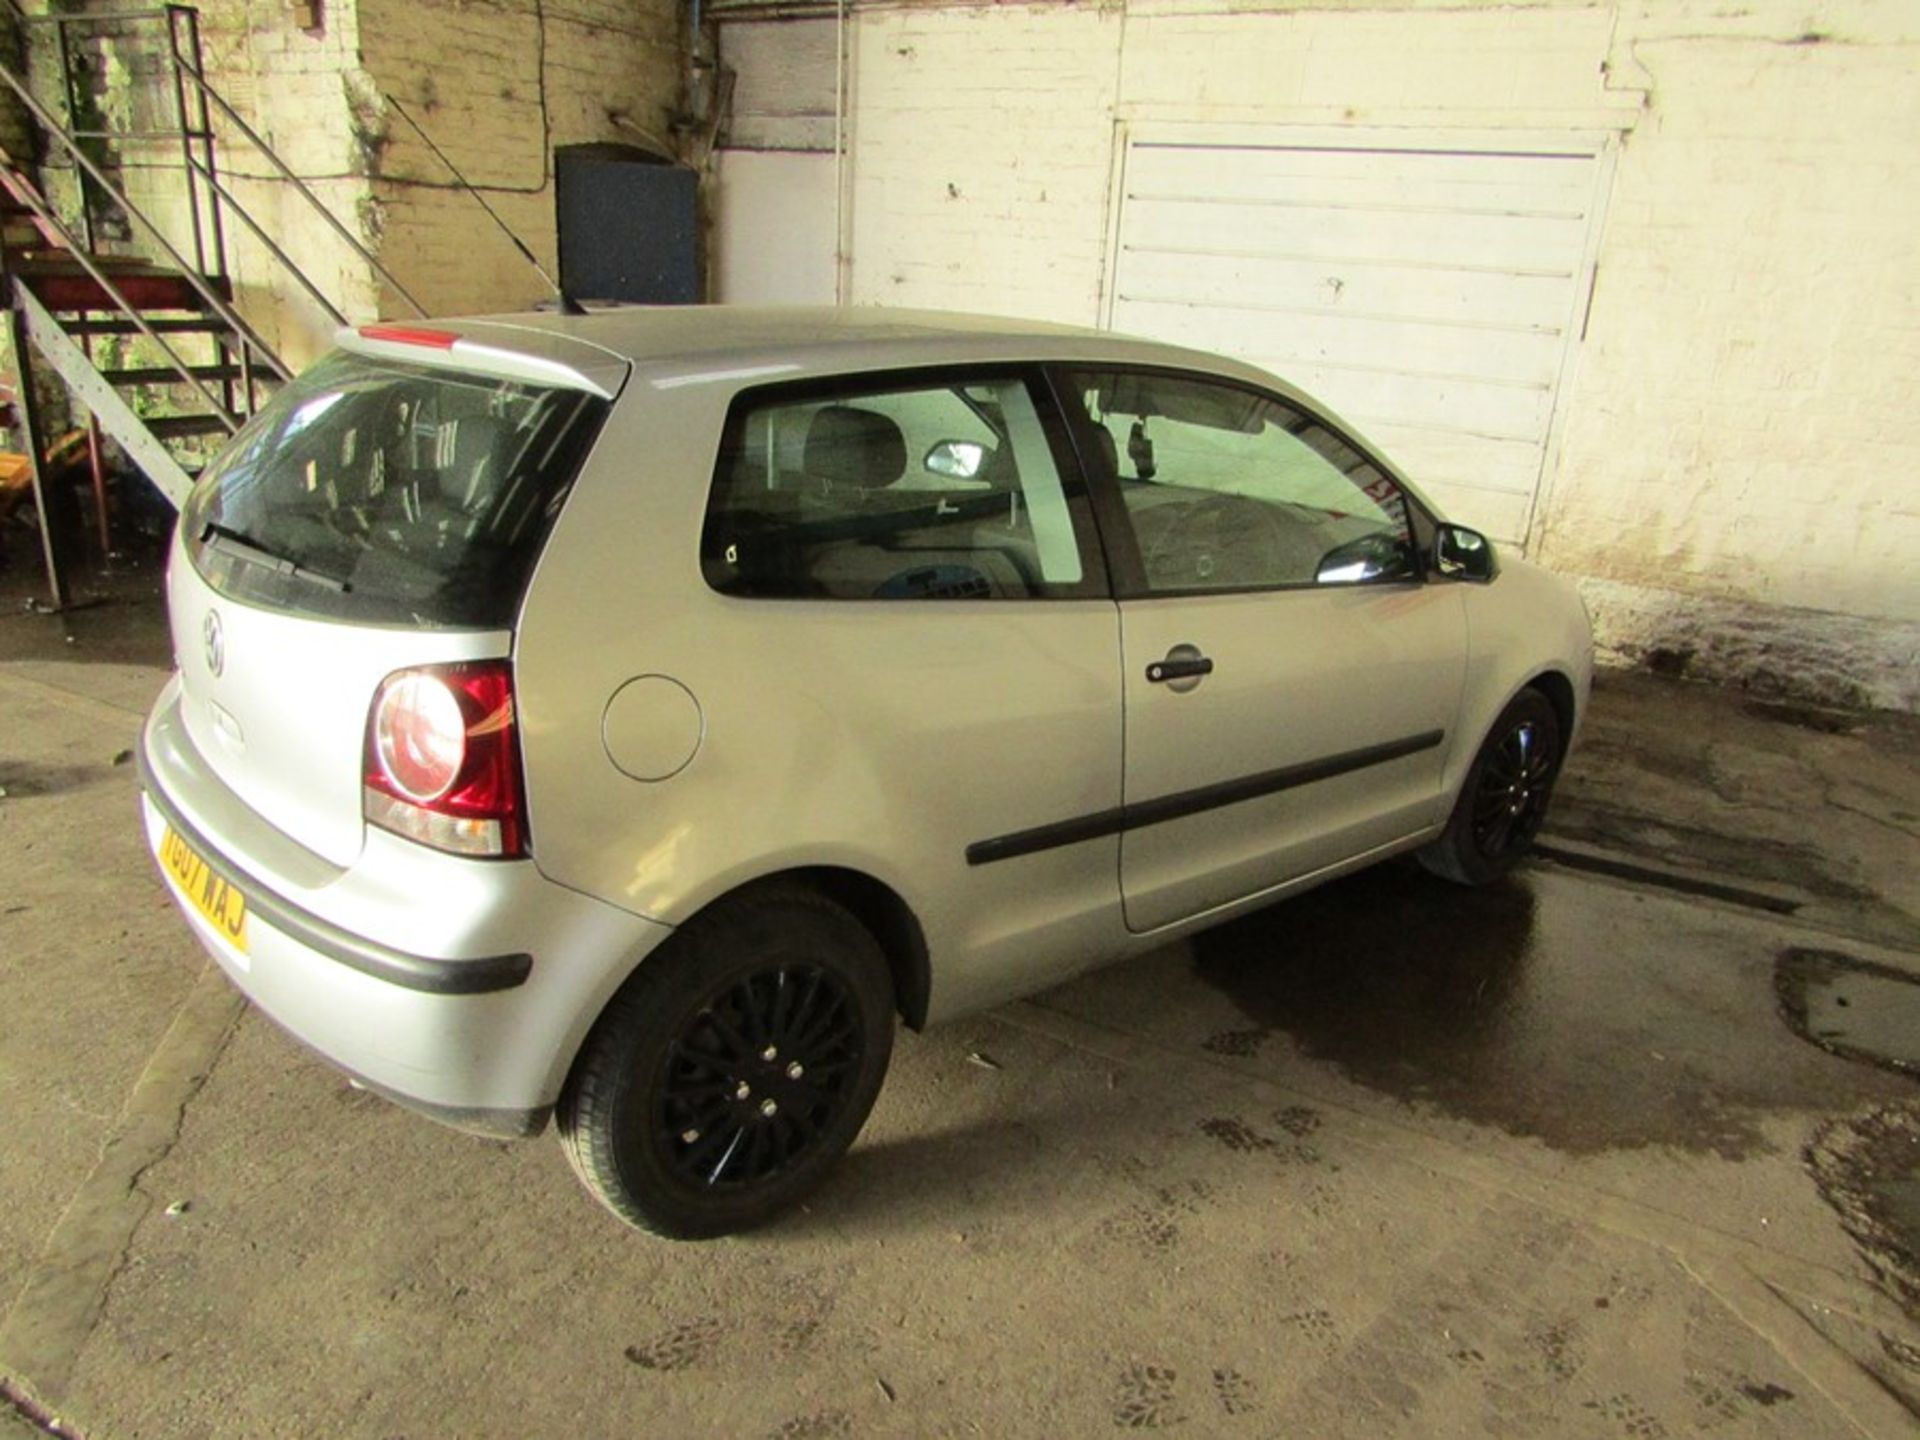 2007 Volkswagen Polo 1.2L hatchback, starts and drives 70,294 Miles Failed MOT 12/09/2020 due to; - Image 2 of 9